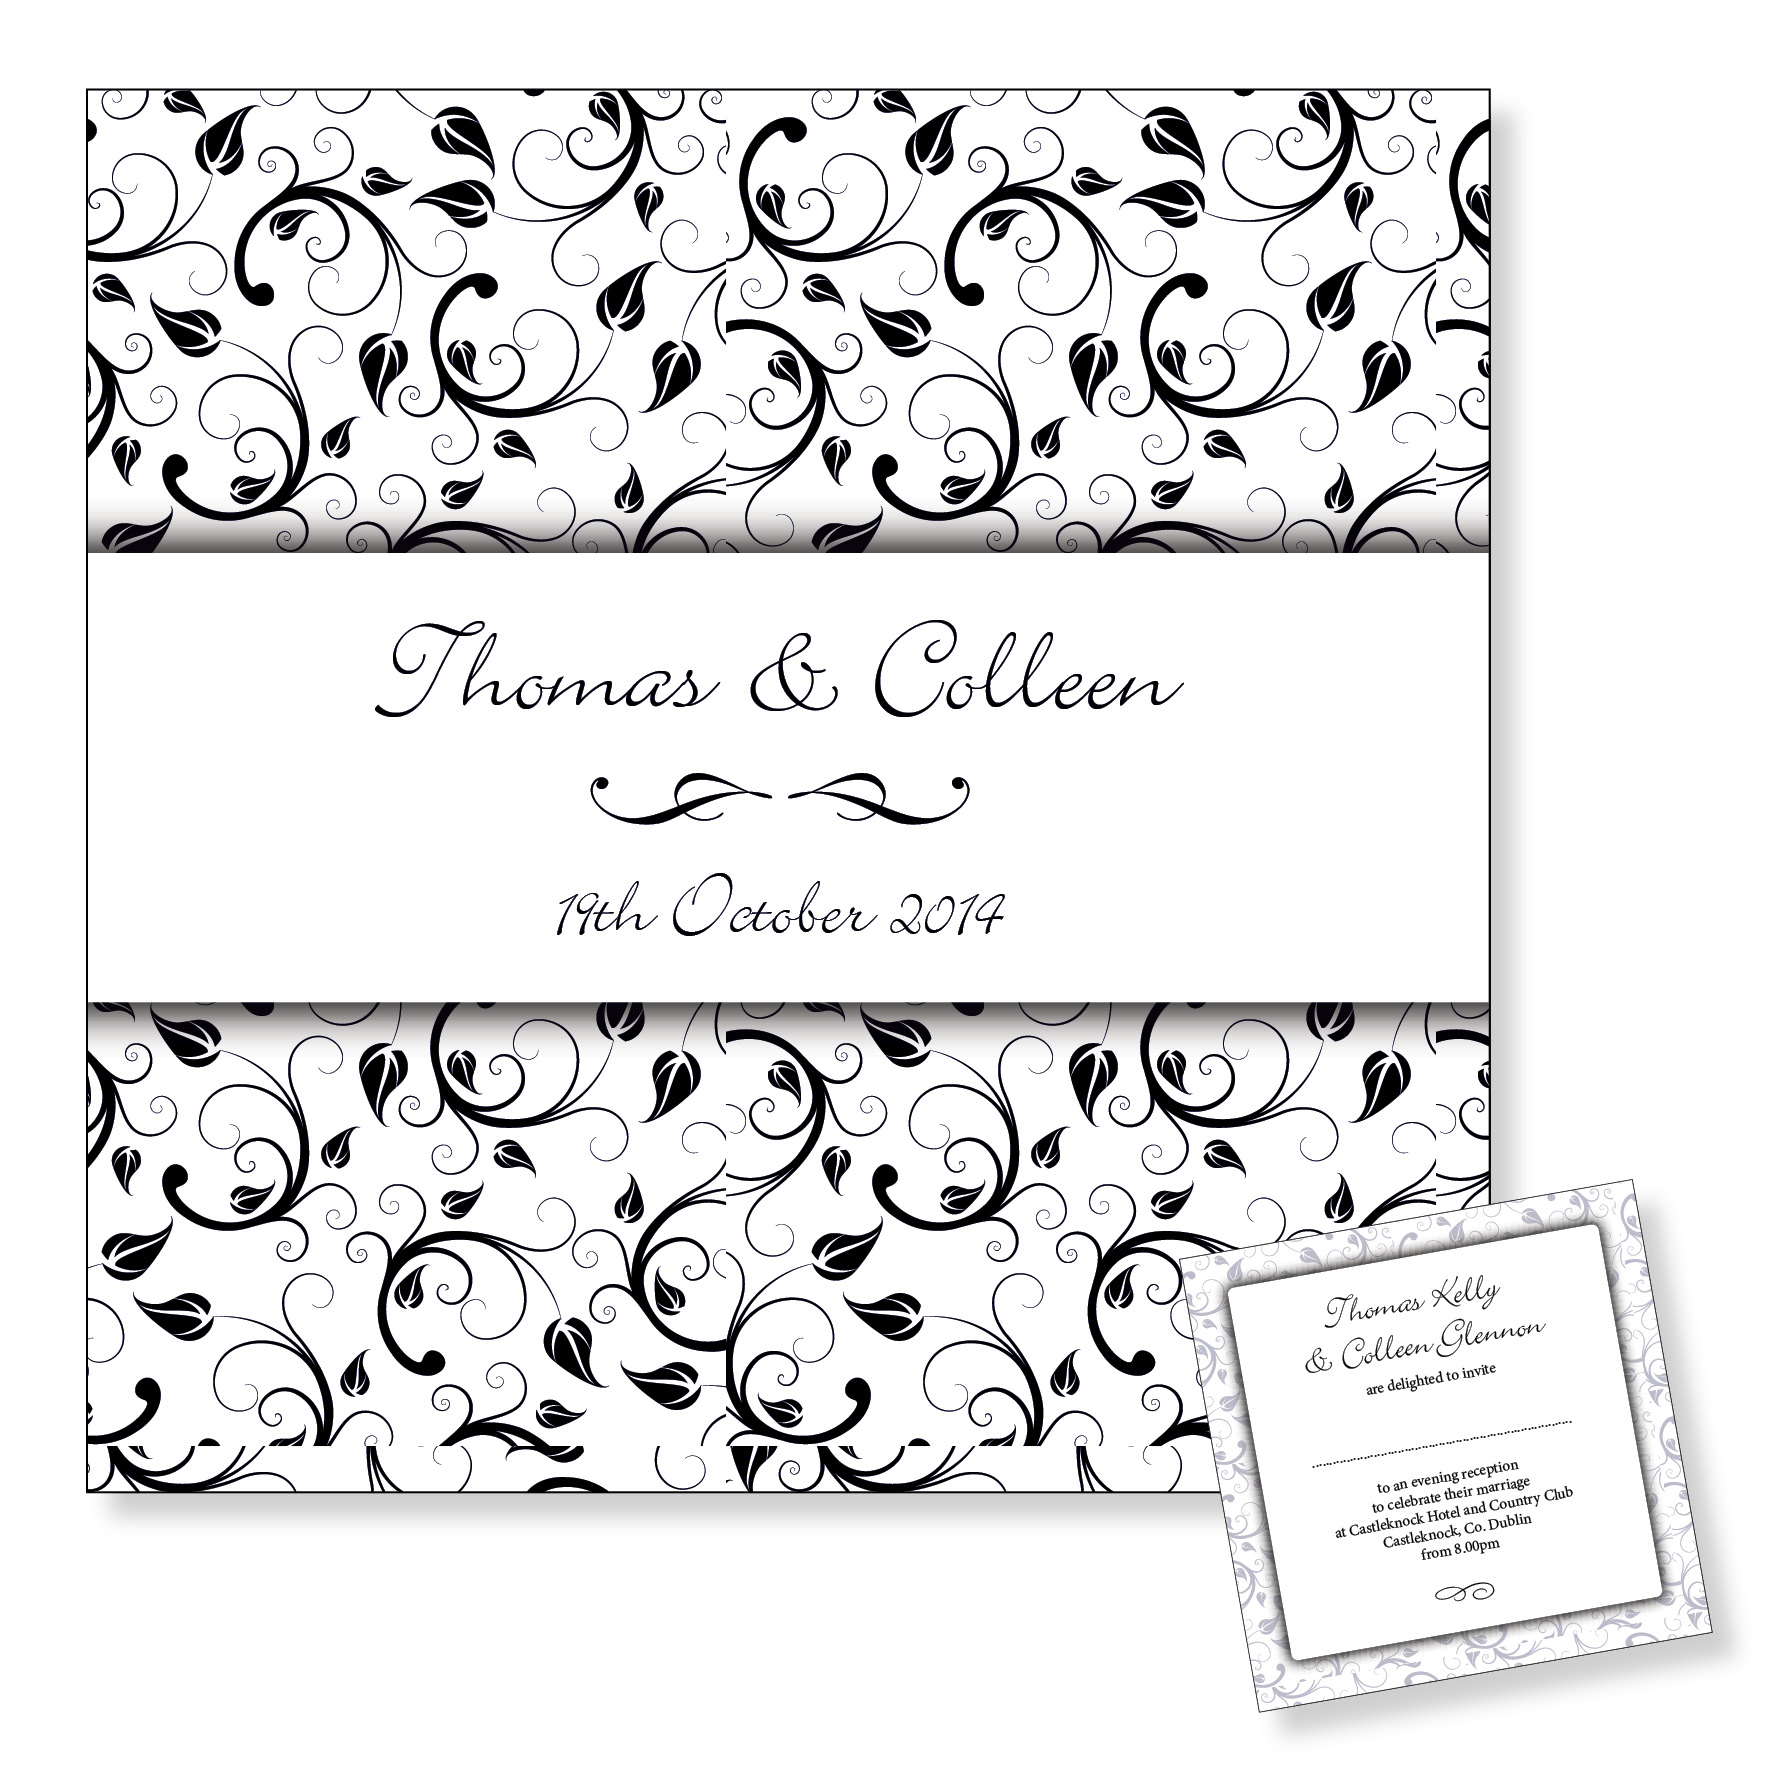 Wedding evening invitation - Black floral